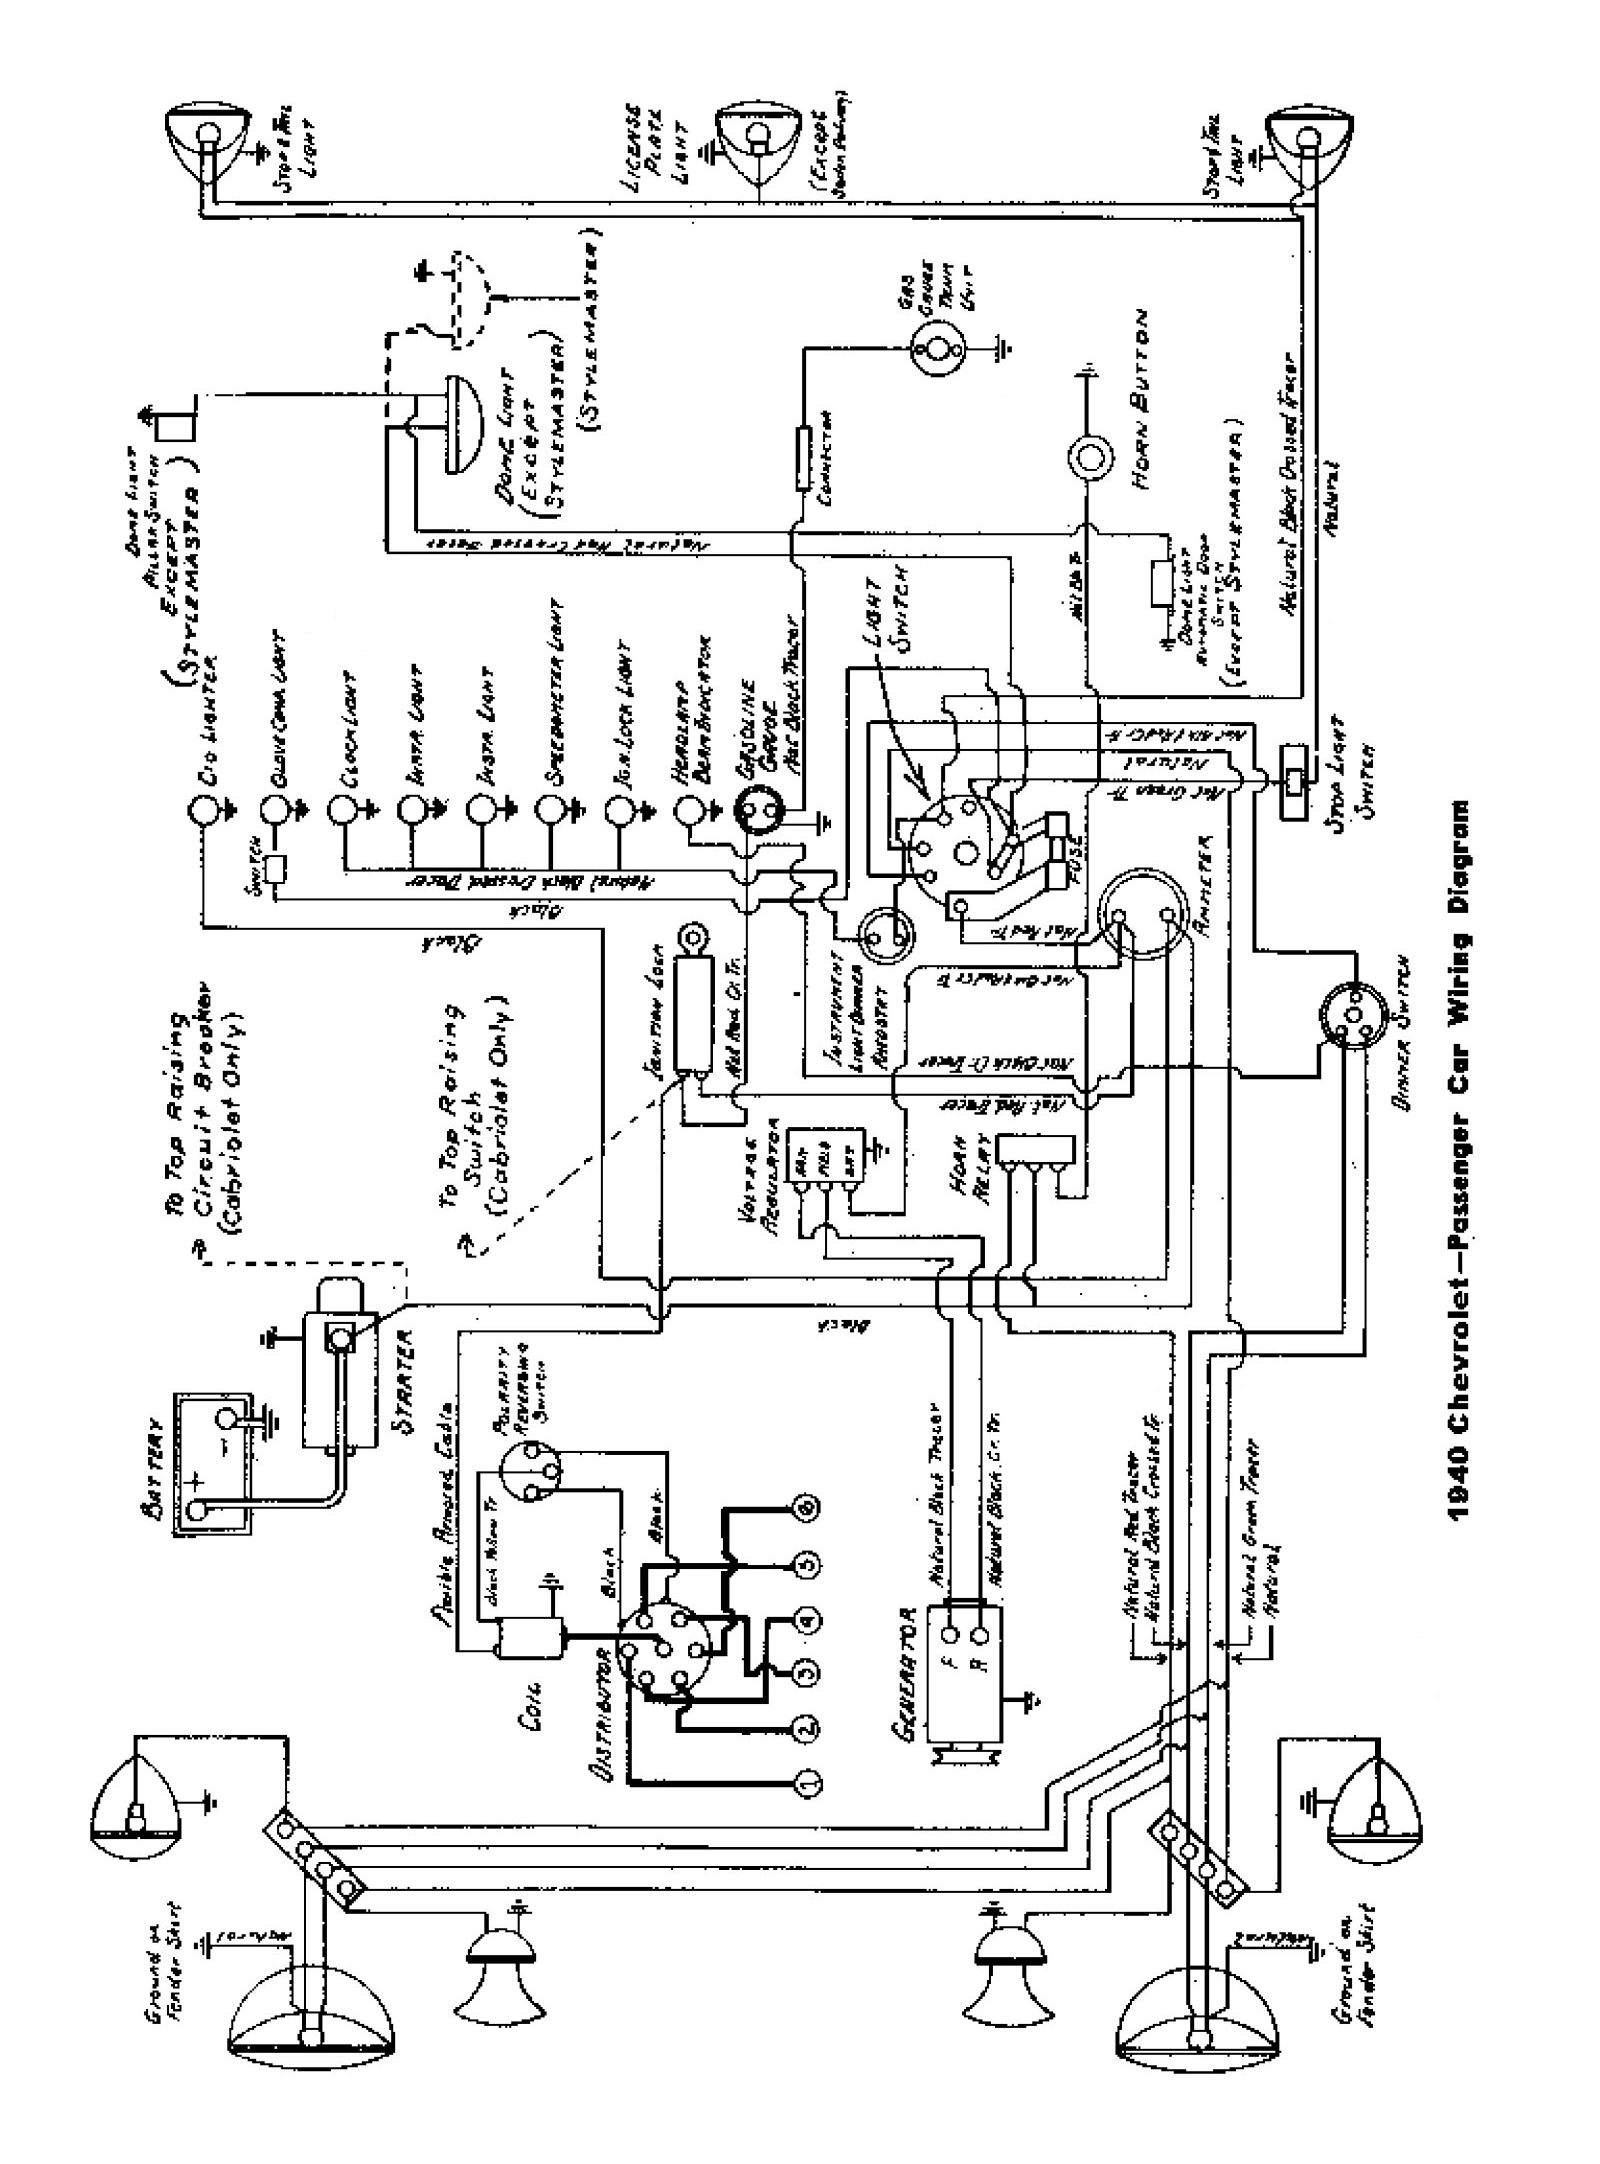 40car chevy wiring diagrams painless wiring harness diagram at reclaimingppi.co